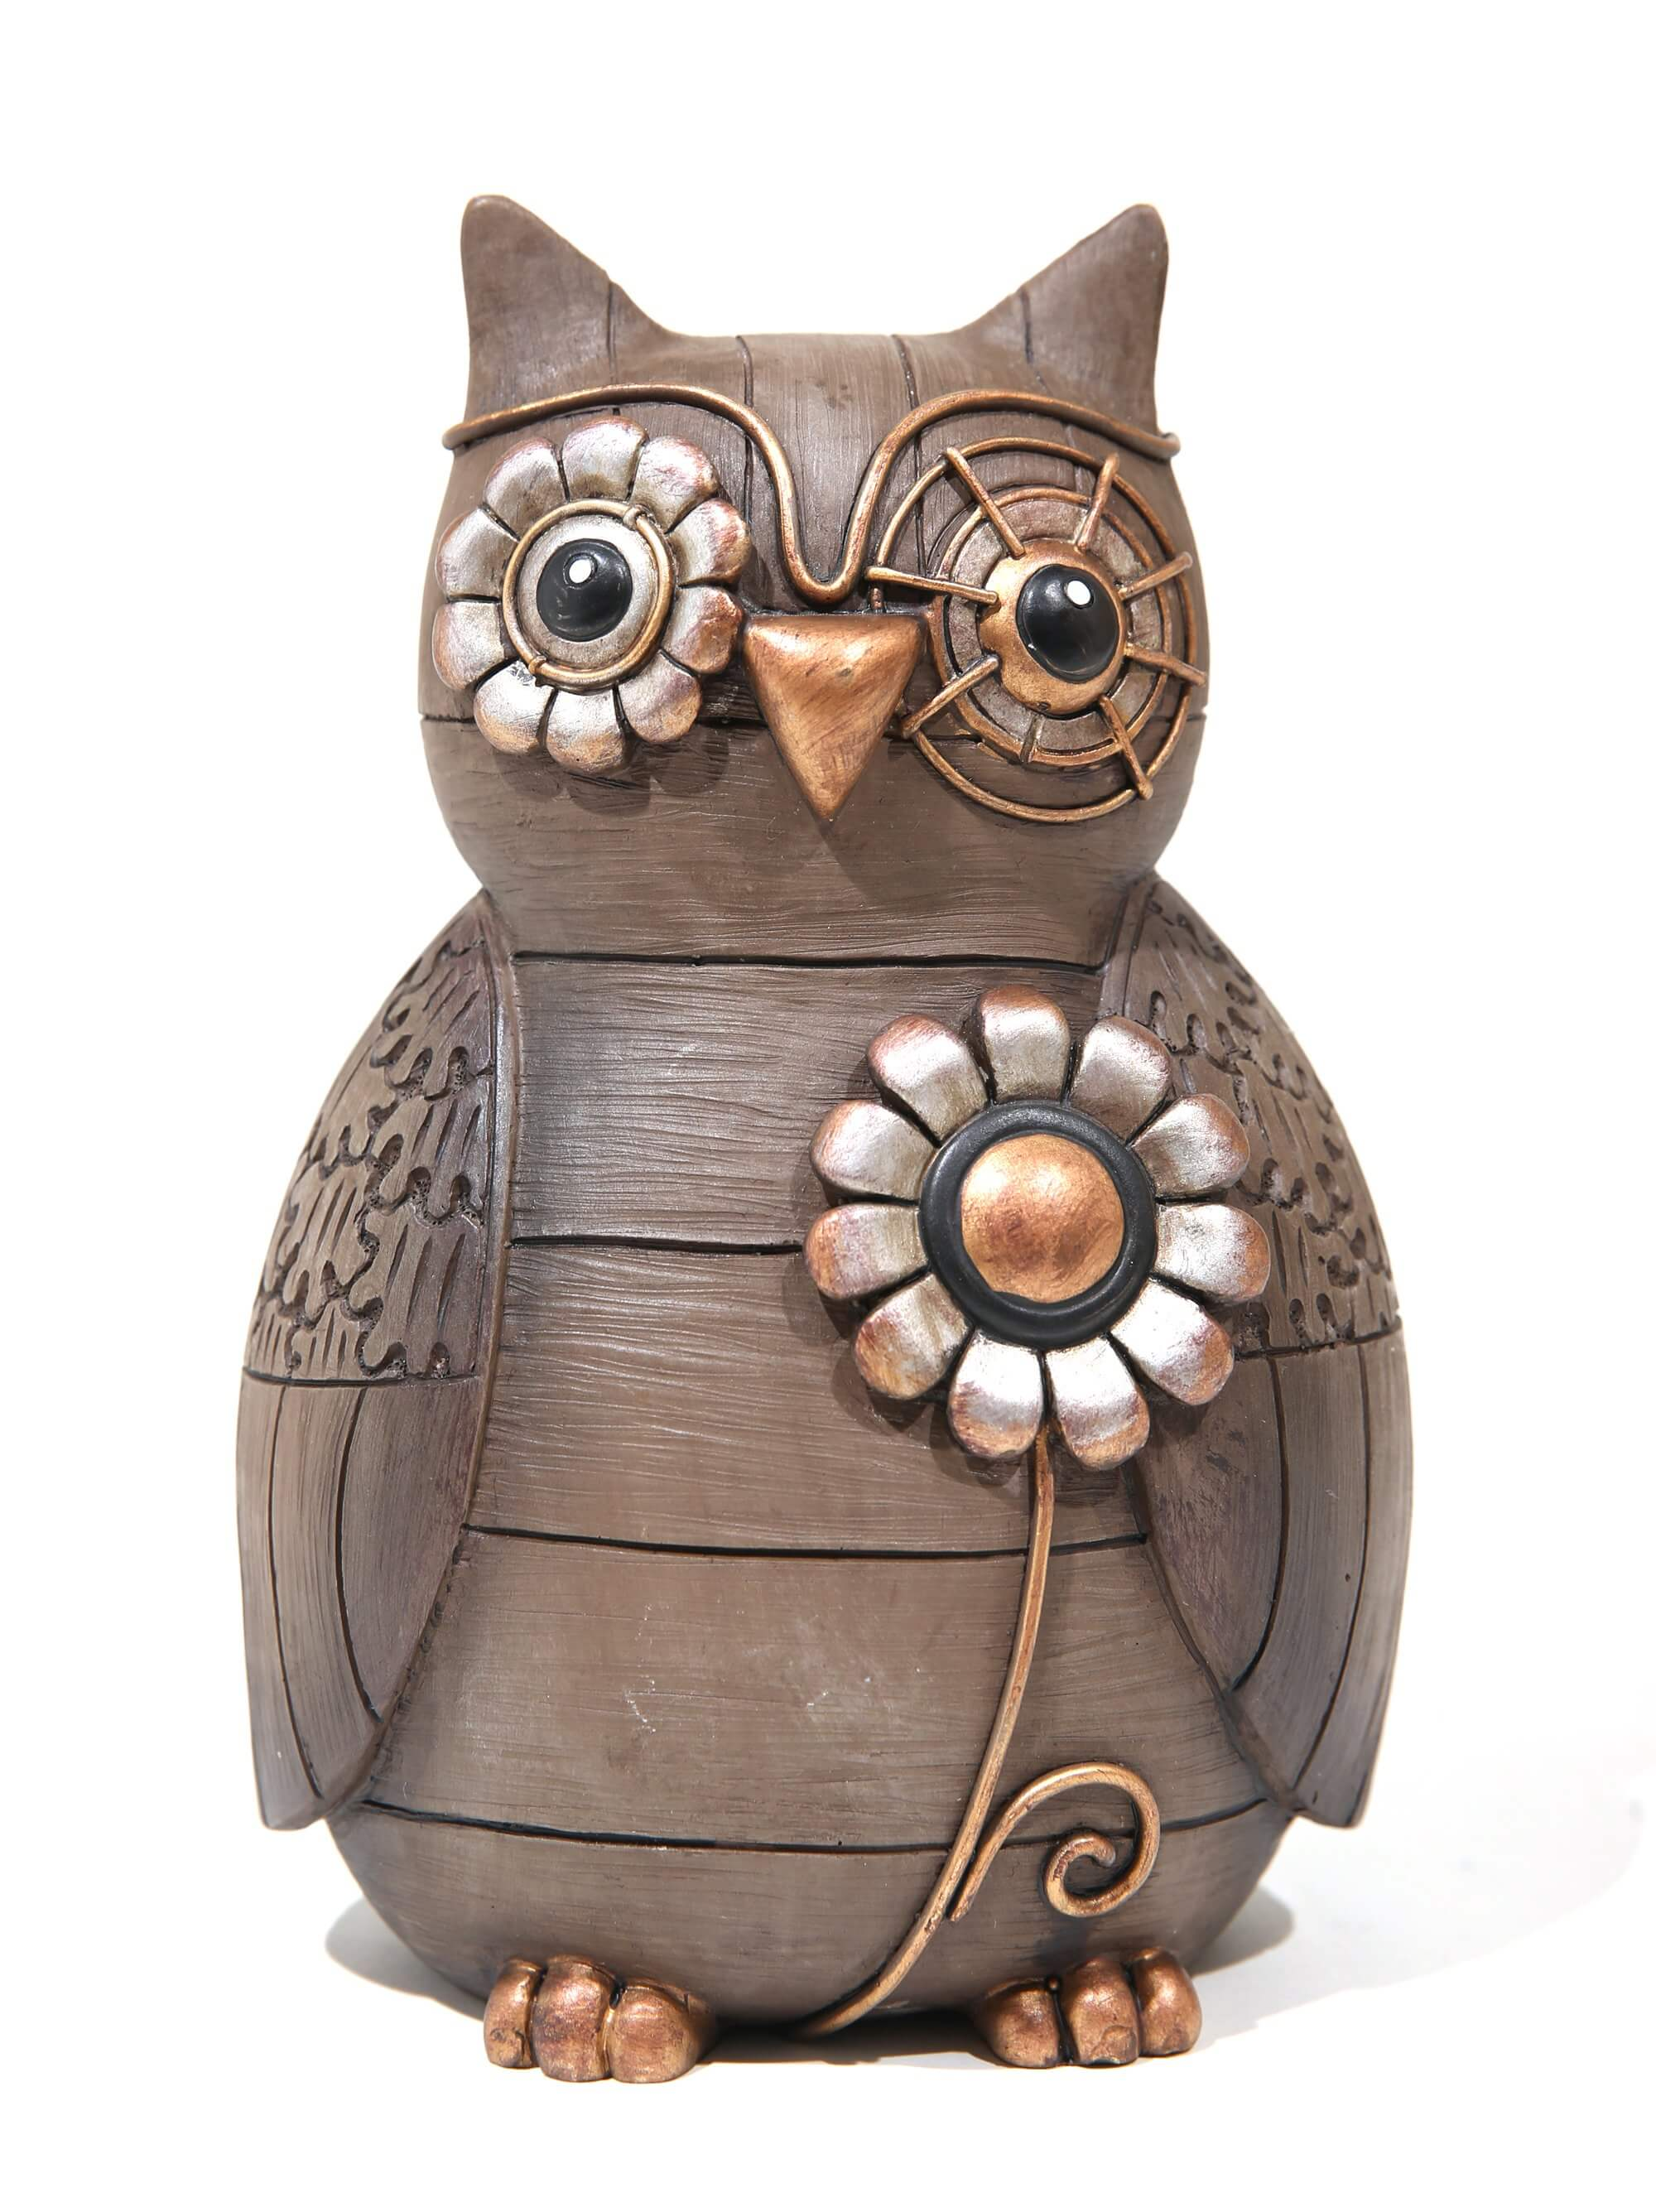 Image of Wise owl figurine